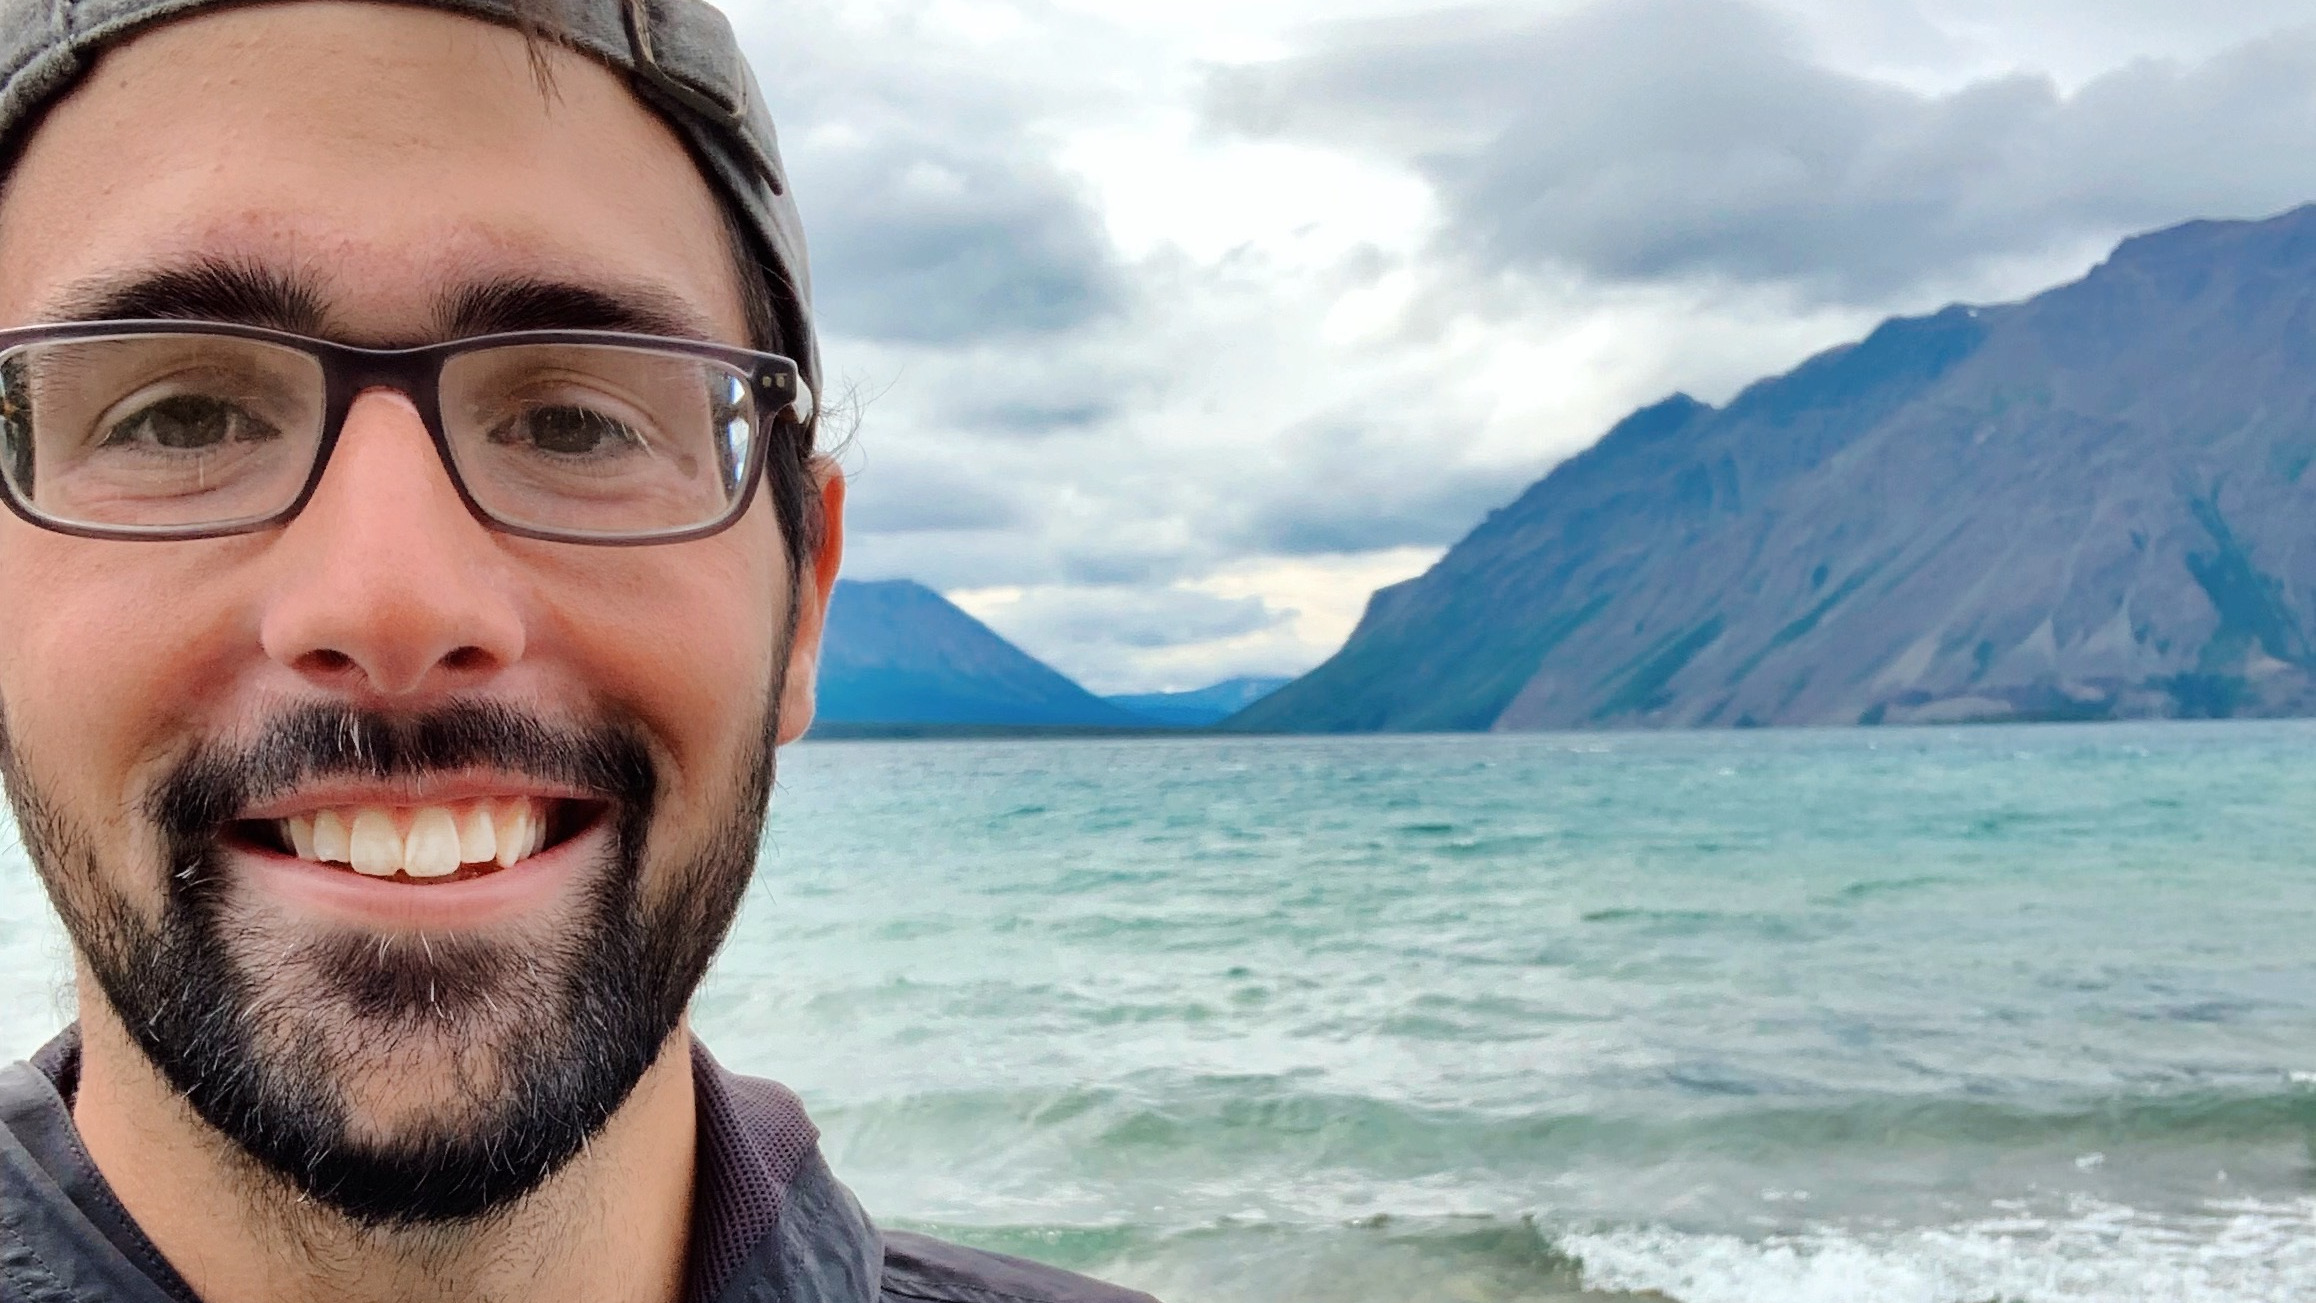 Vaughn Shirey selfie on beach with mountains